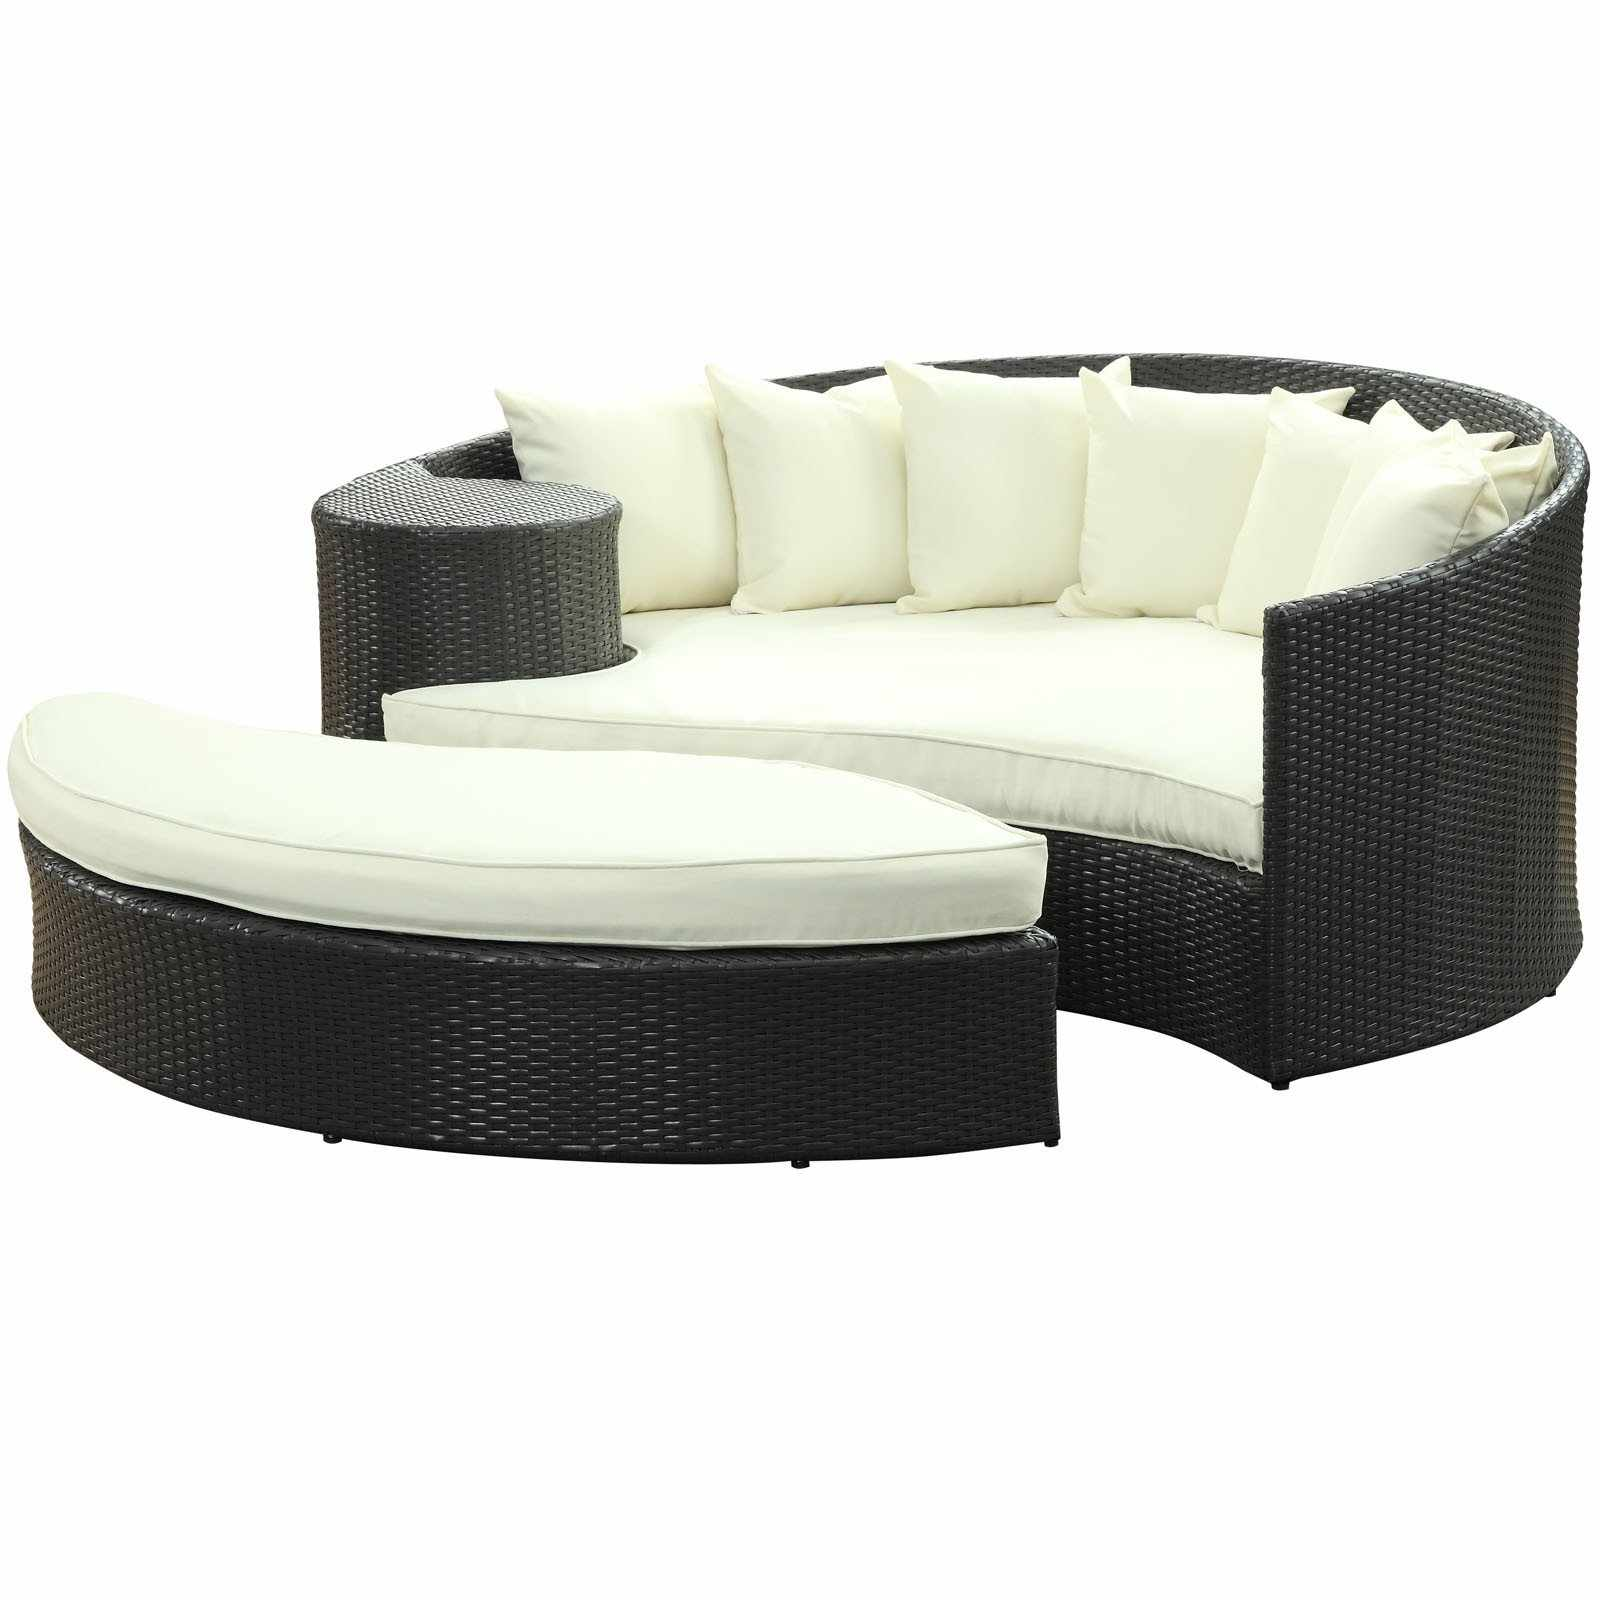 Havana Outdoor Daybed Ottoman and pillows included Free delivery